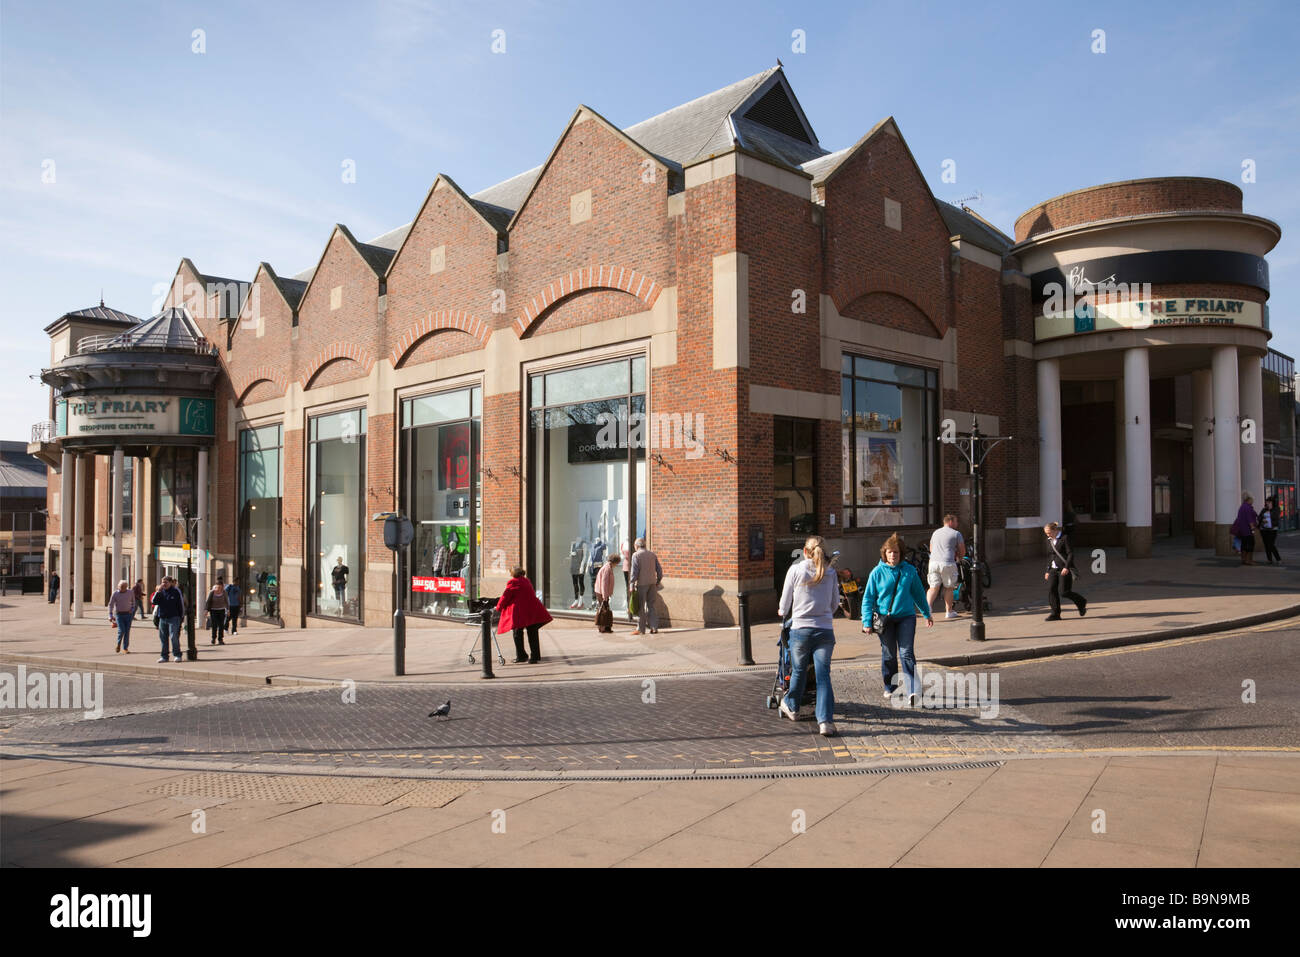 Guildford Surrey England UK The Friary Shopping Centre building exterior - Stock Image